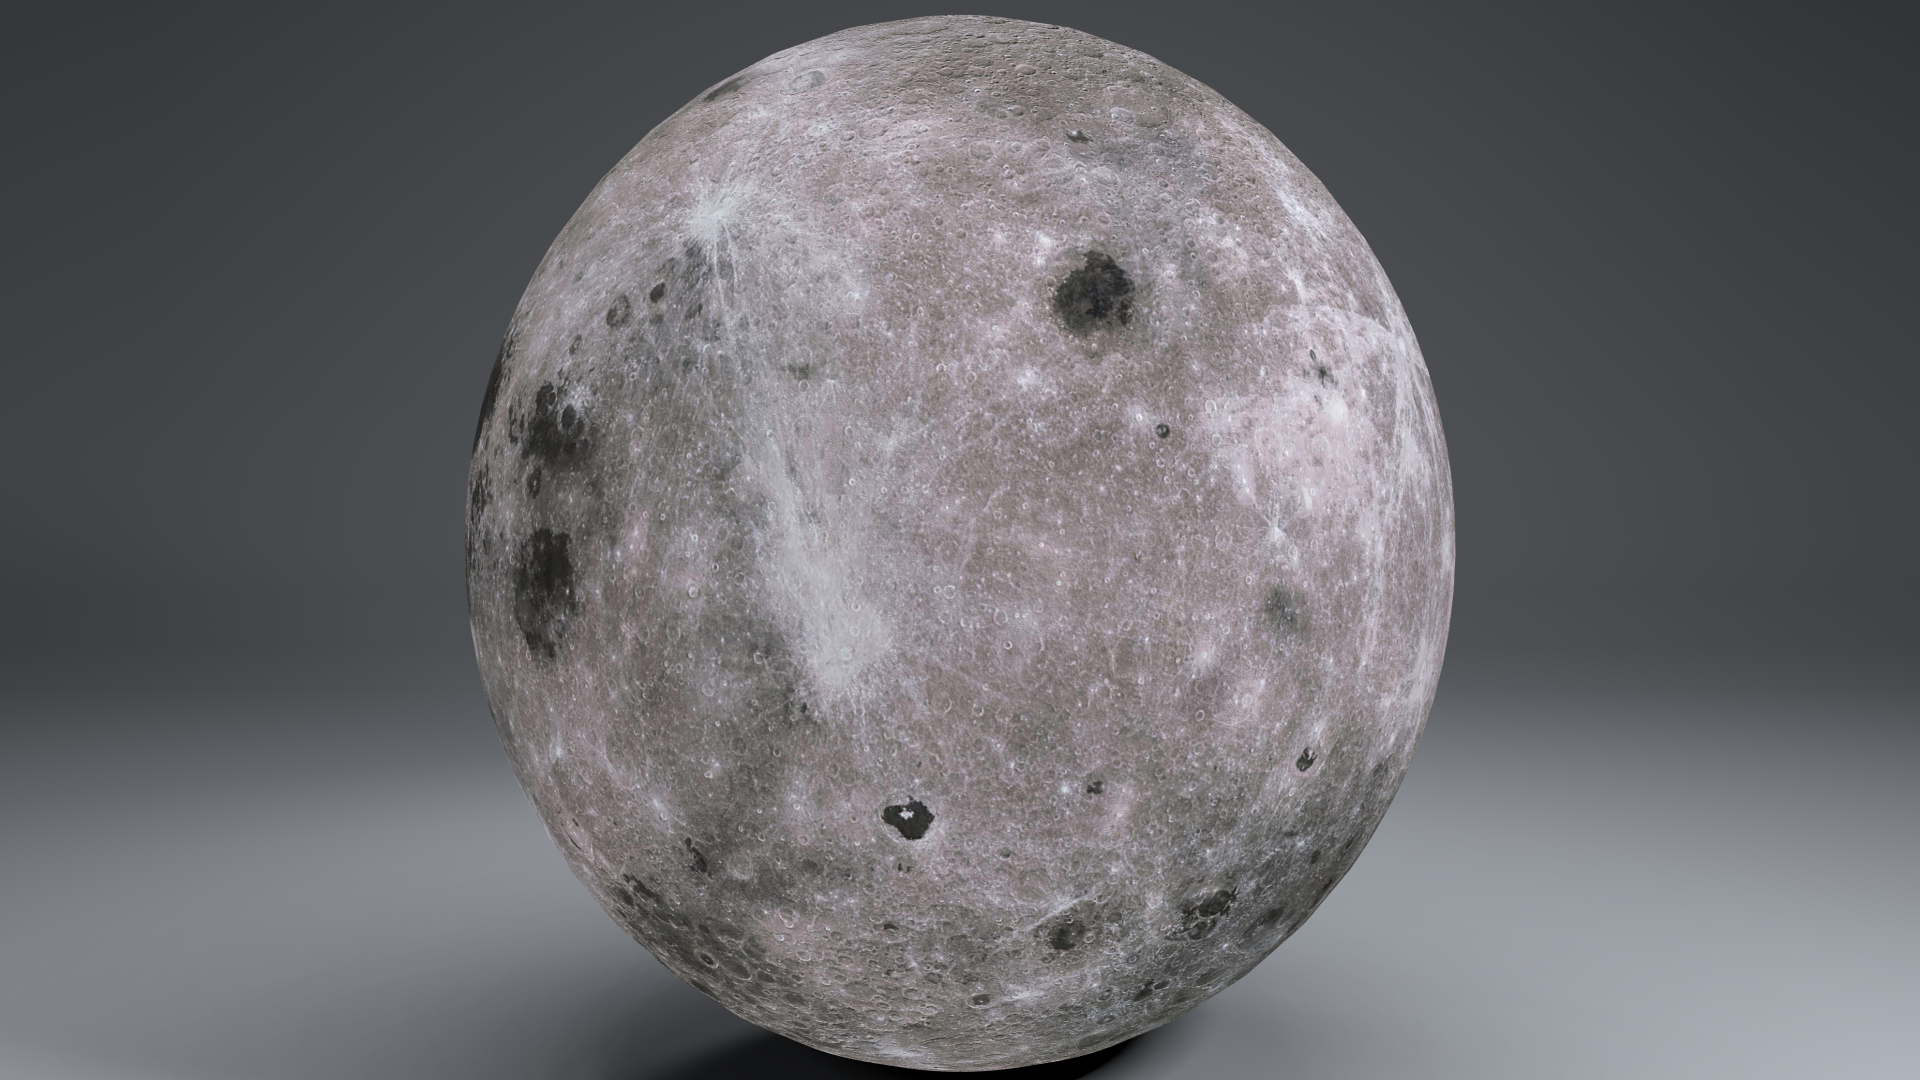 moonglobe 4k 3d model 3ds fbx blend dae obj 221755